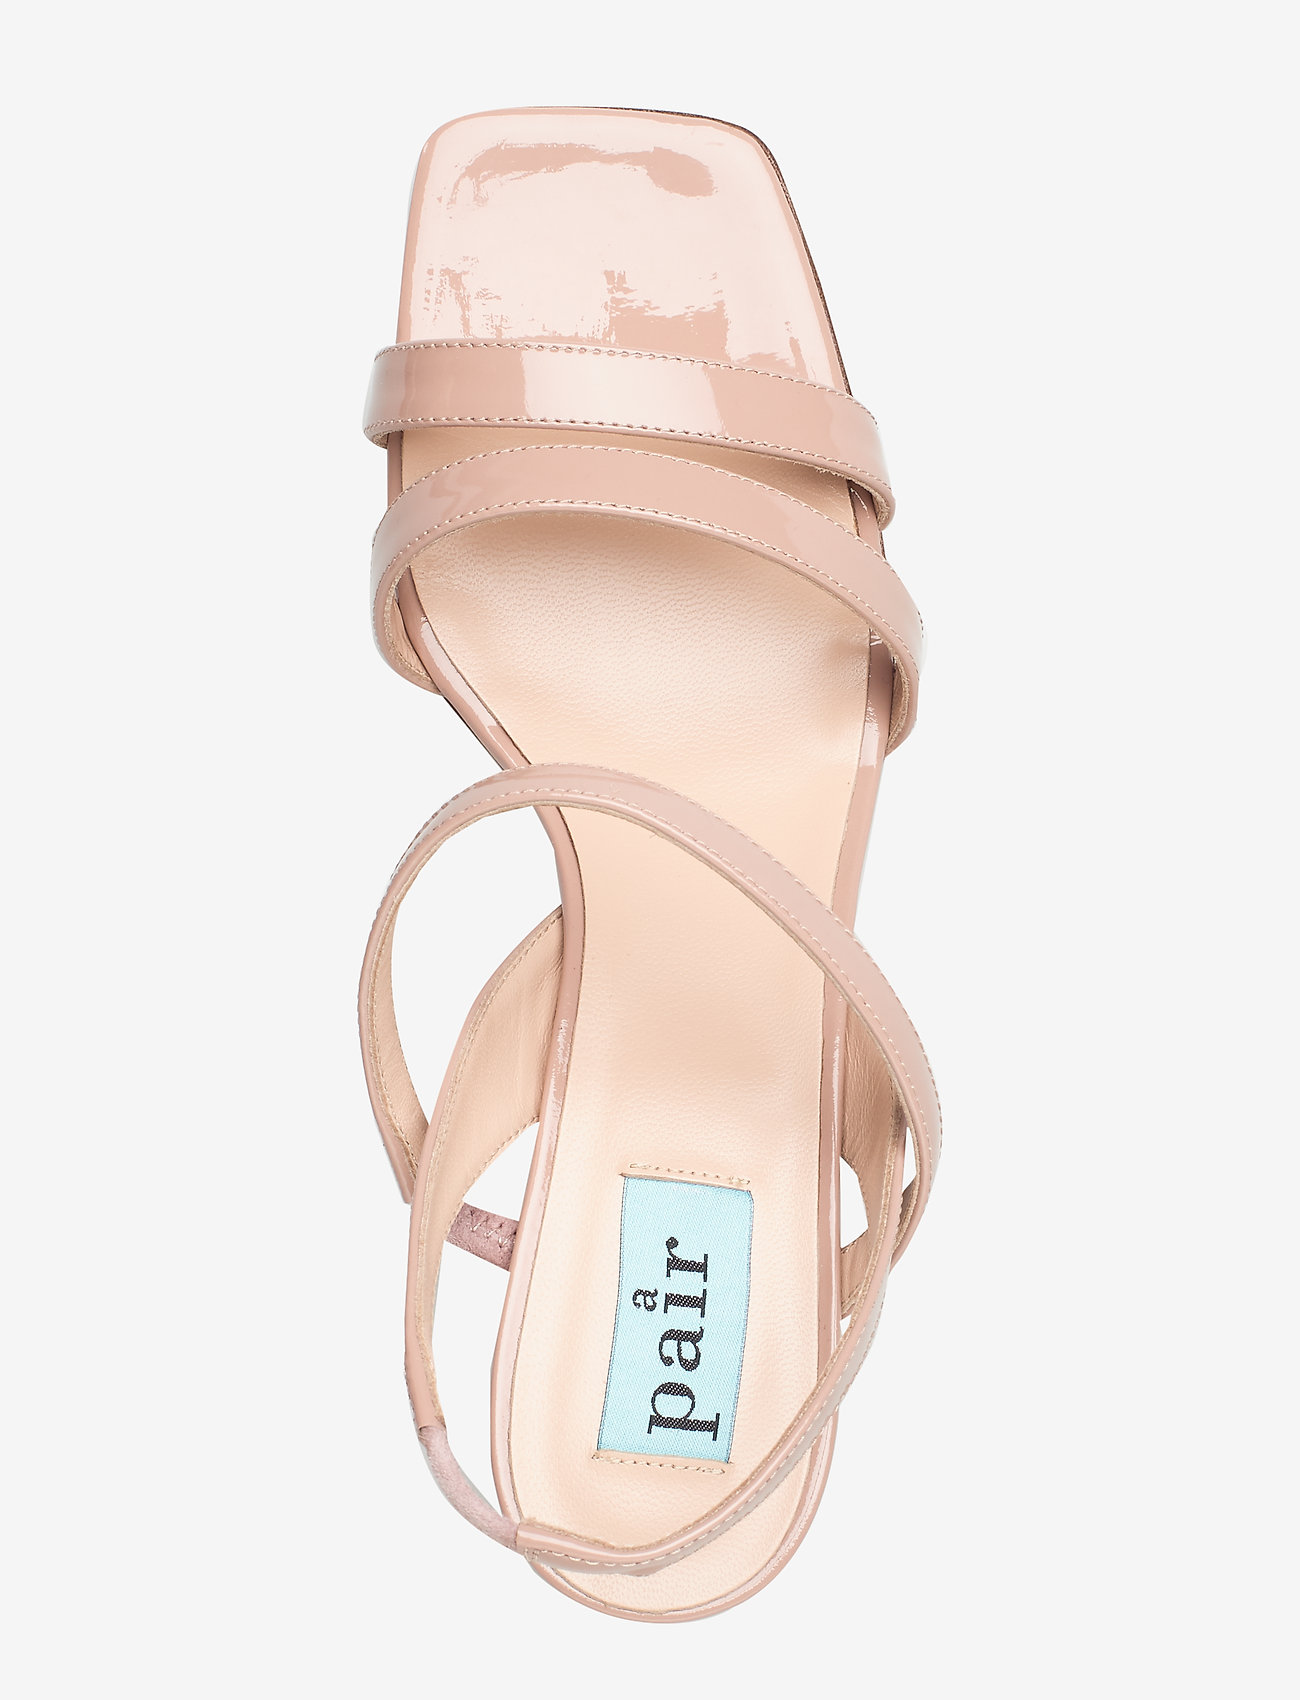 New Heel String (Beige) (152 €) - Apair 1NSC4